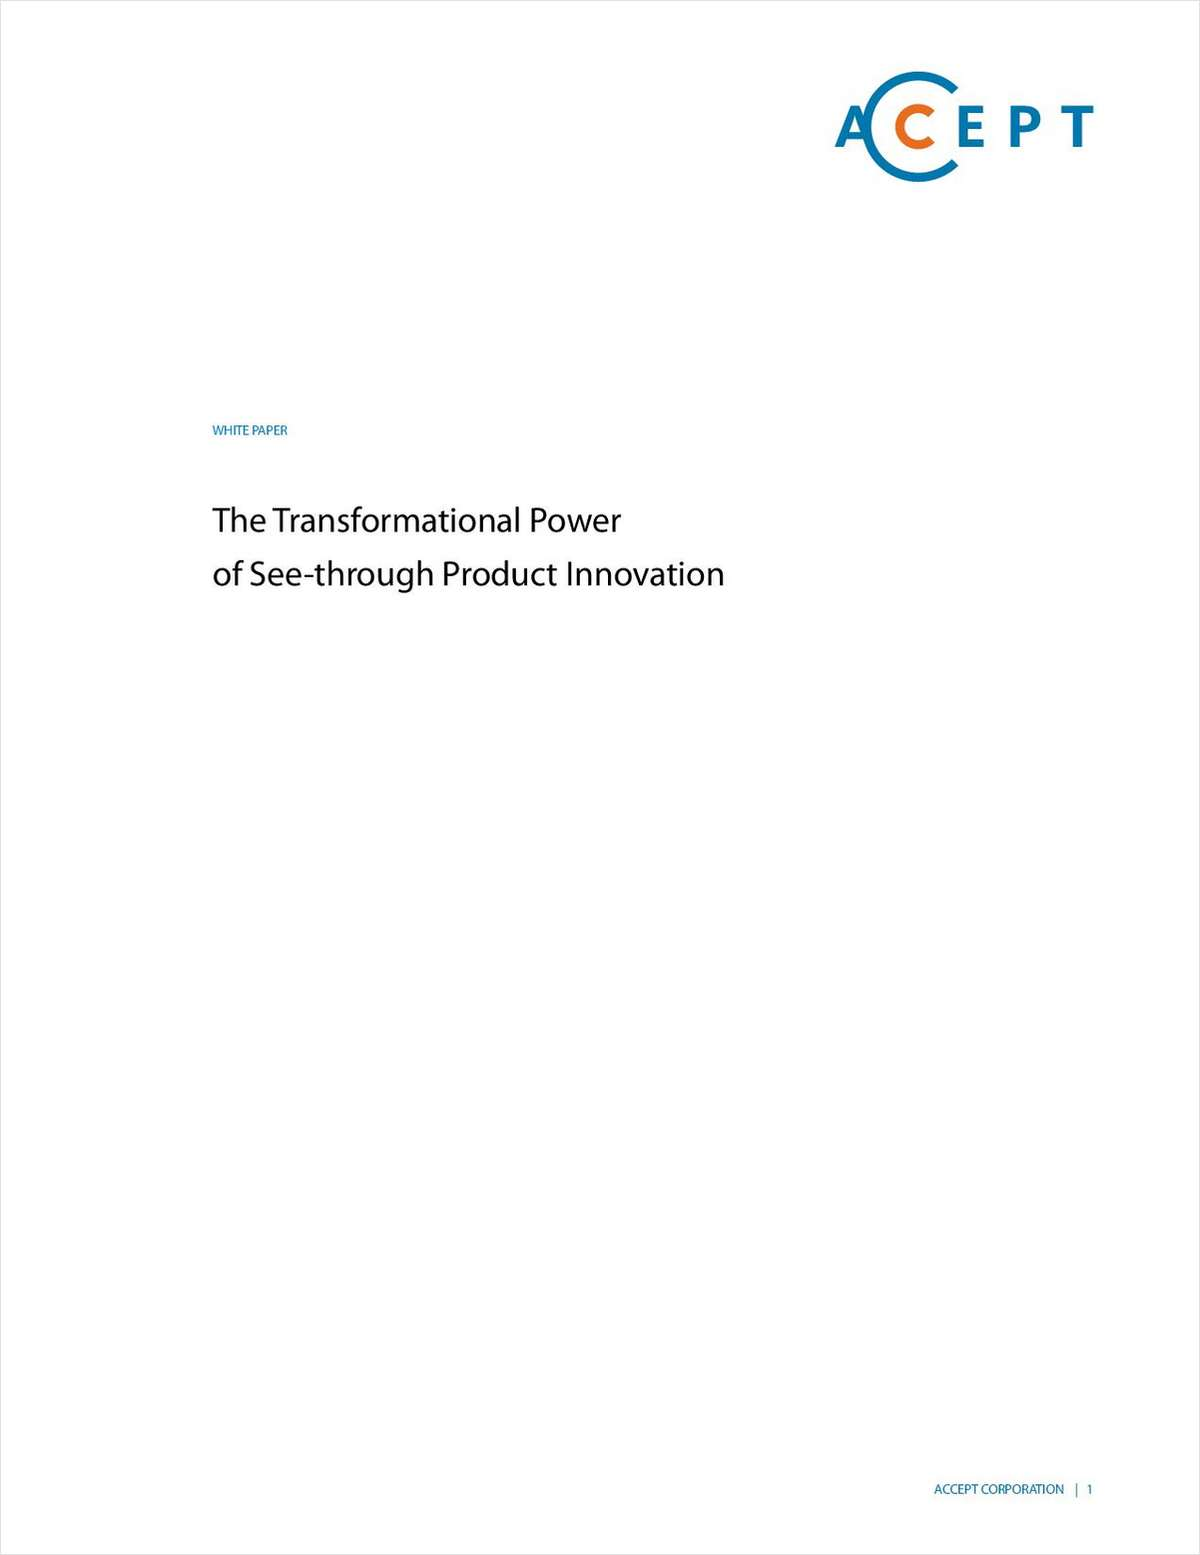 The Transformational Power of See-through Product Innovation